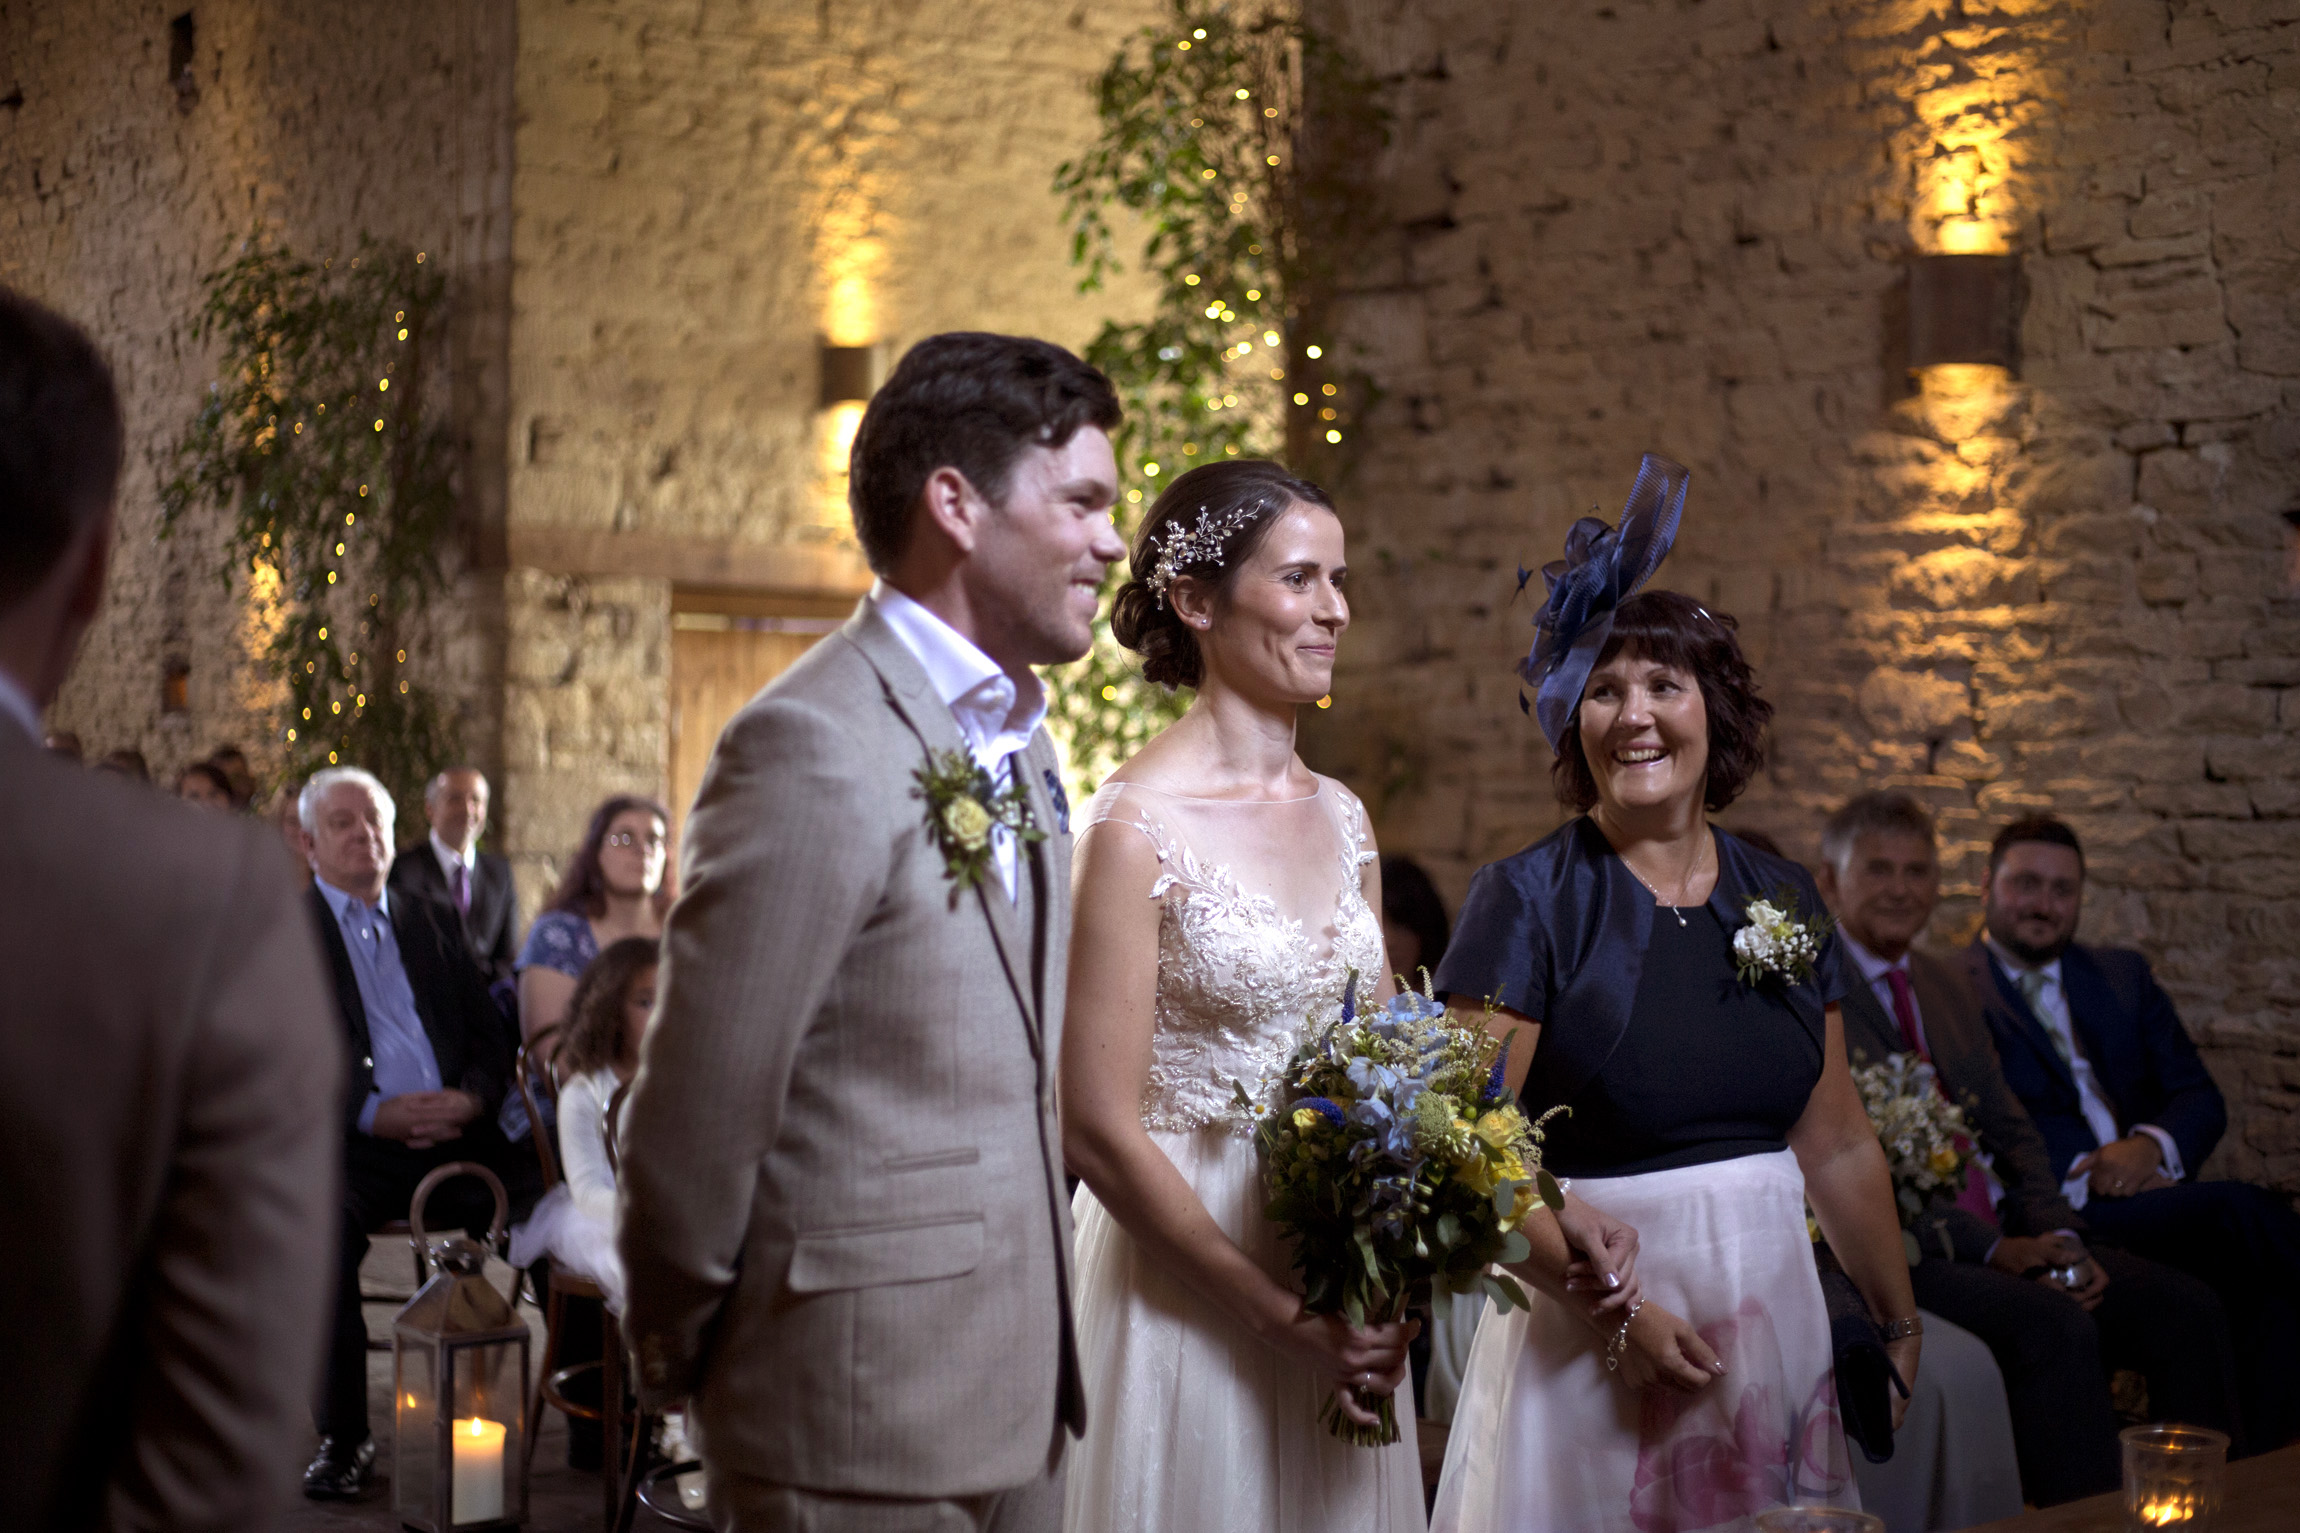 Bride and groom stand making their vows in the ceremony Cripps barn outdoor wedding photographer